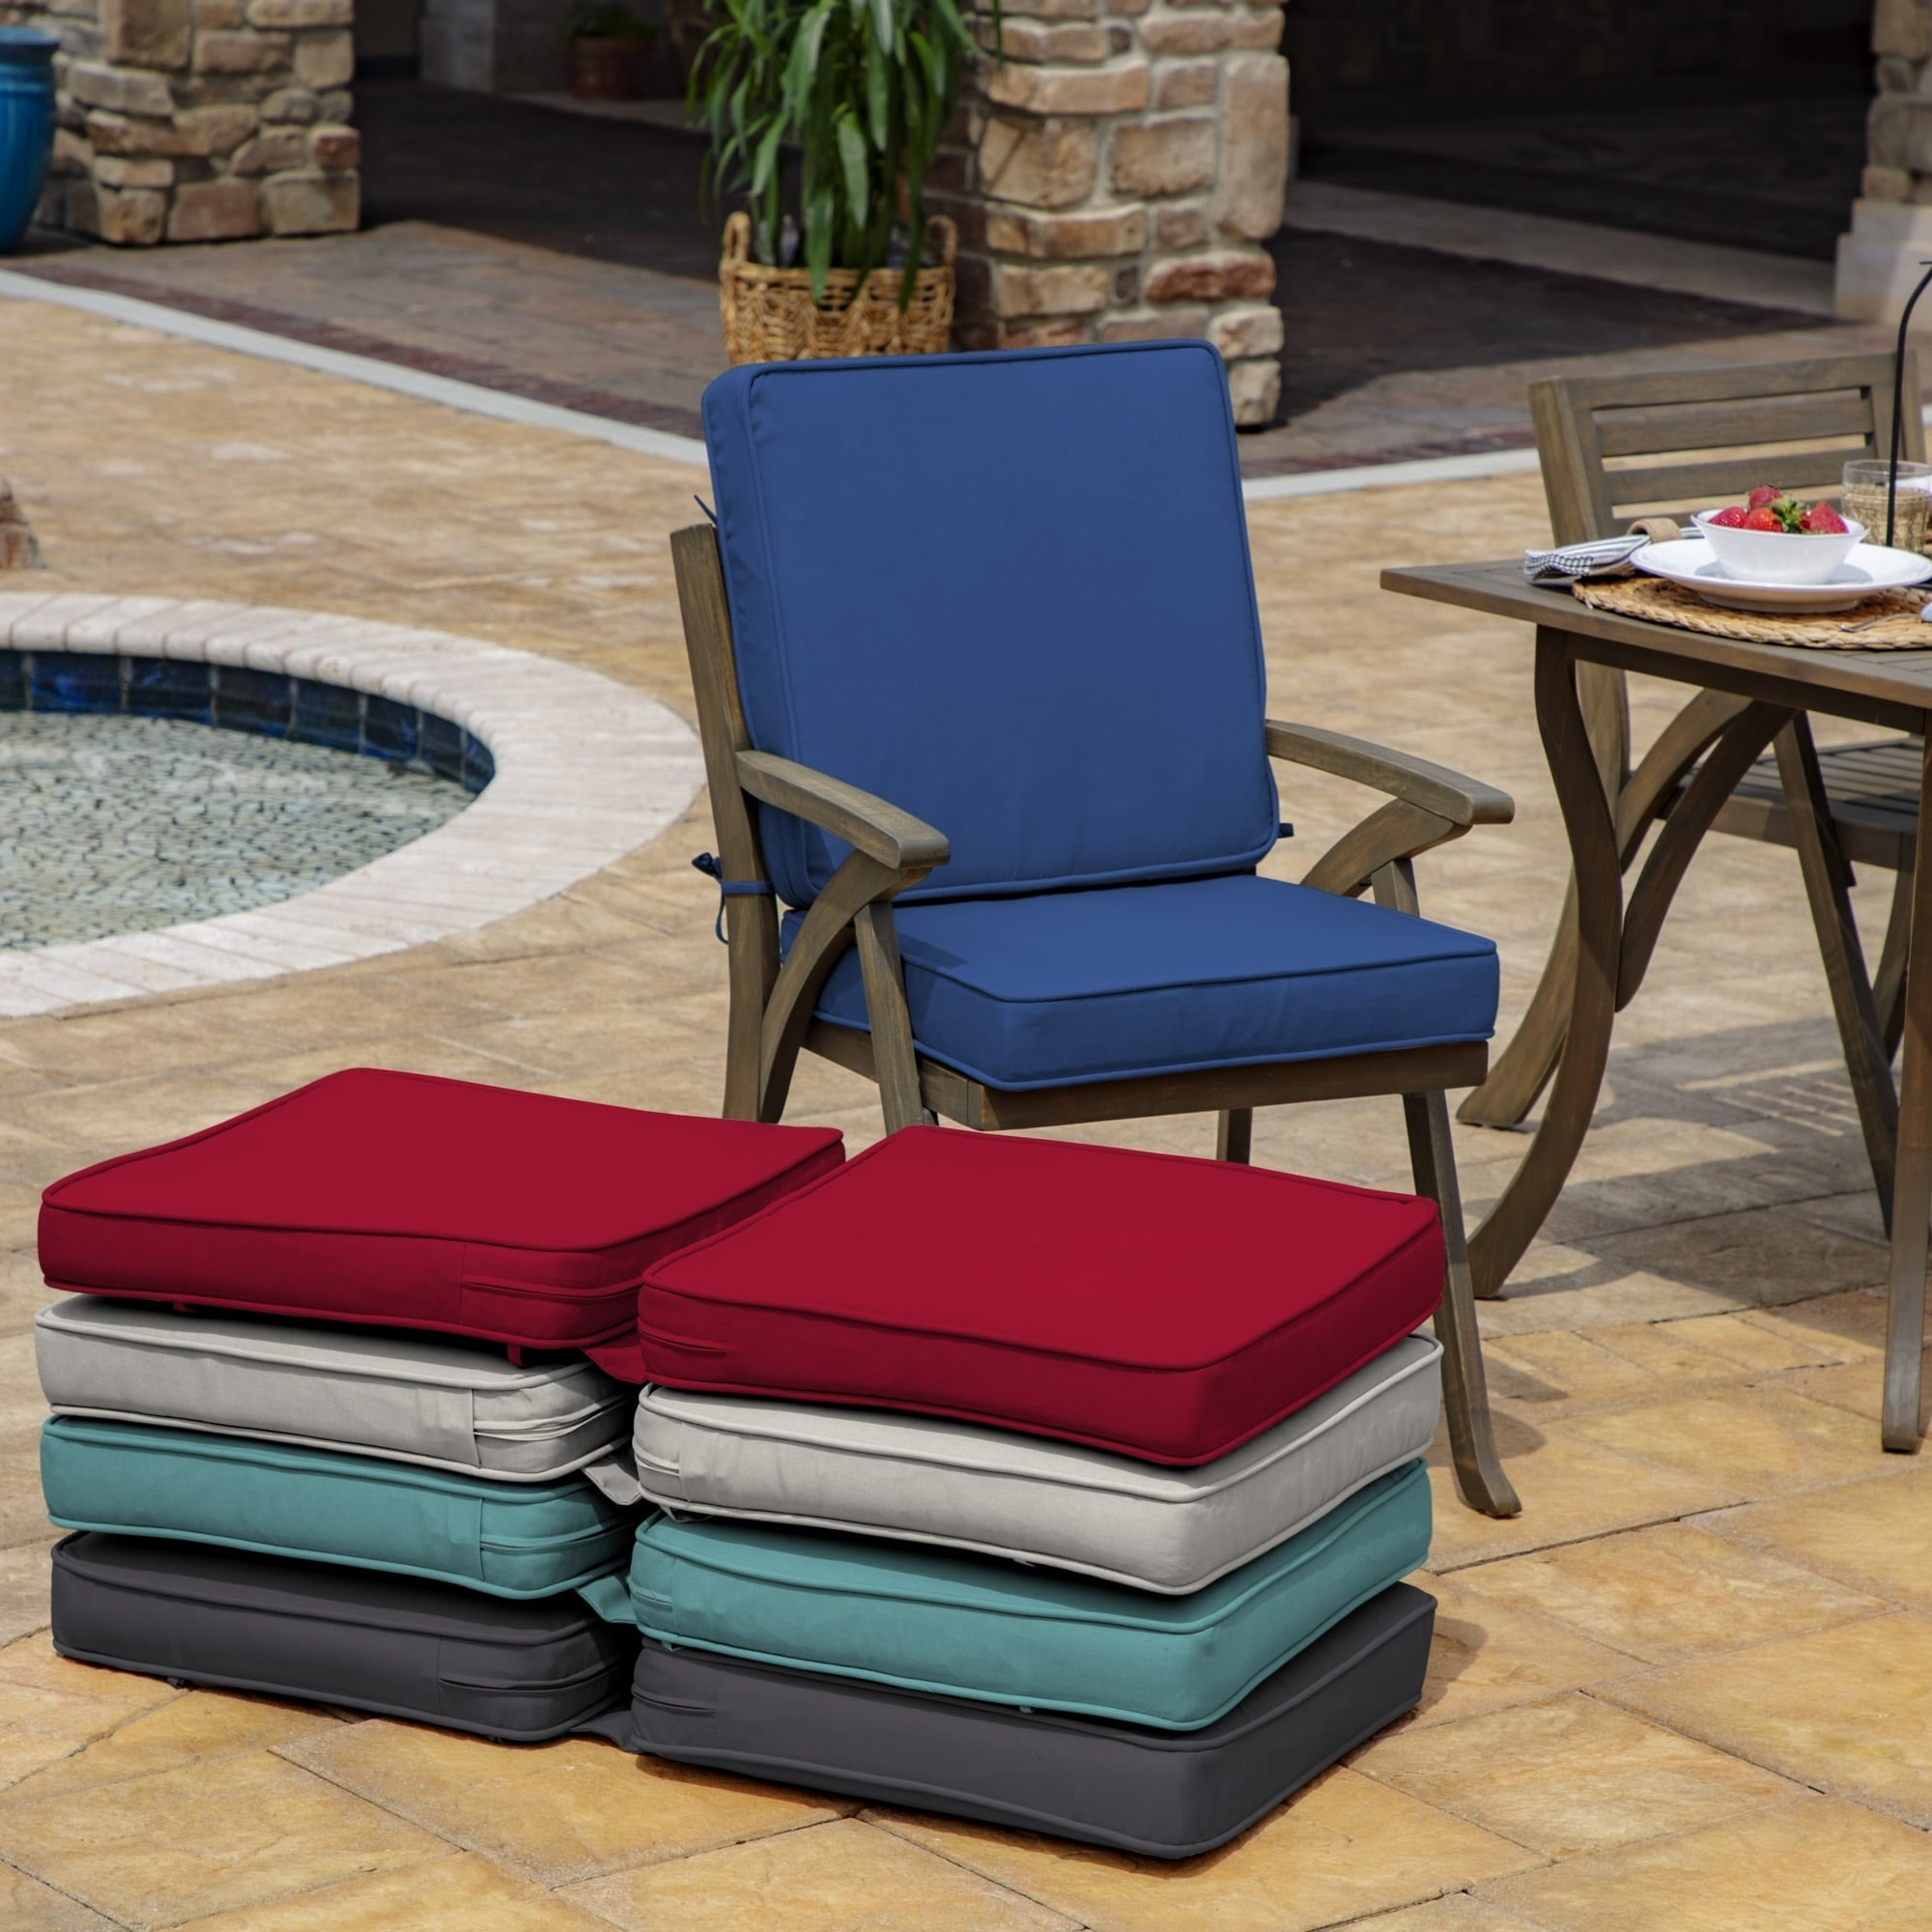 Shop For Arden Selections Profoam Acrylic High Back Chair Cushion 40 L X 20 W X 3 5 H In Get Free Delivery On Everything At Overstock Your Online Garden Patio Shop Get 5 In Rewards With Club O 28528815